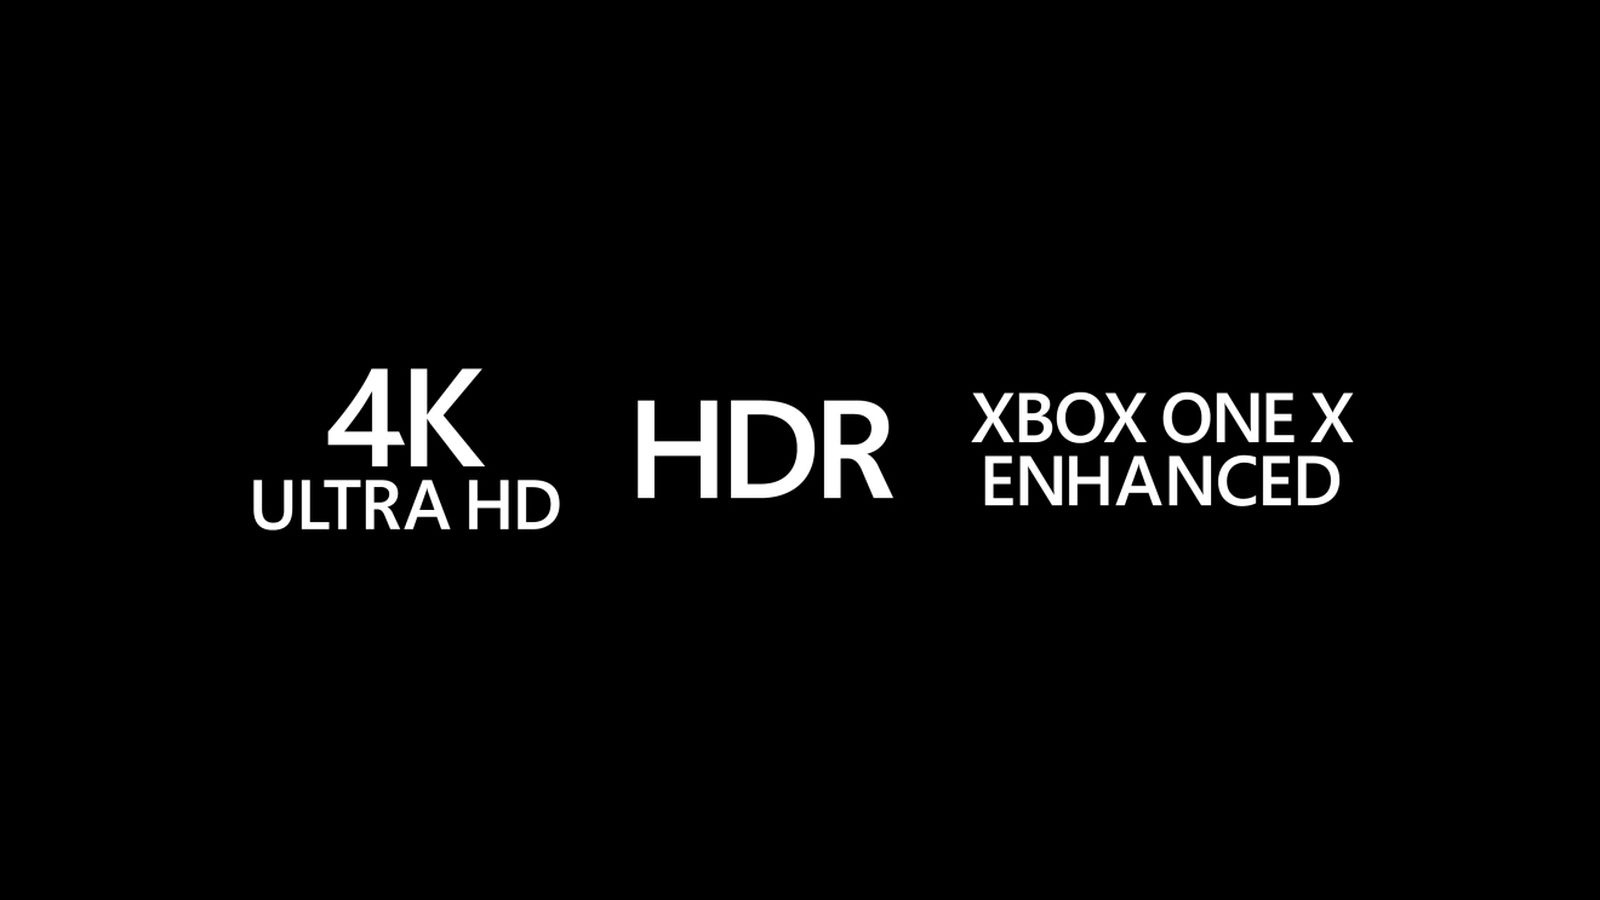 Project Cars  Hdr K Xbox One X